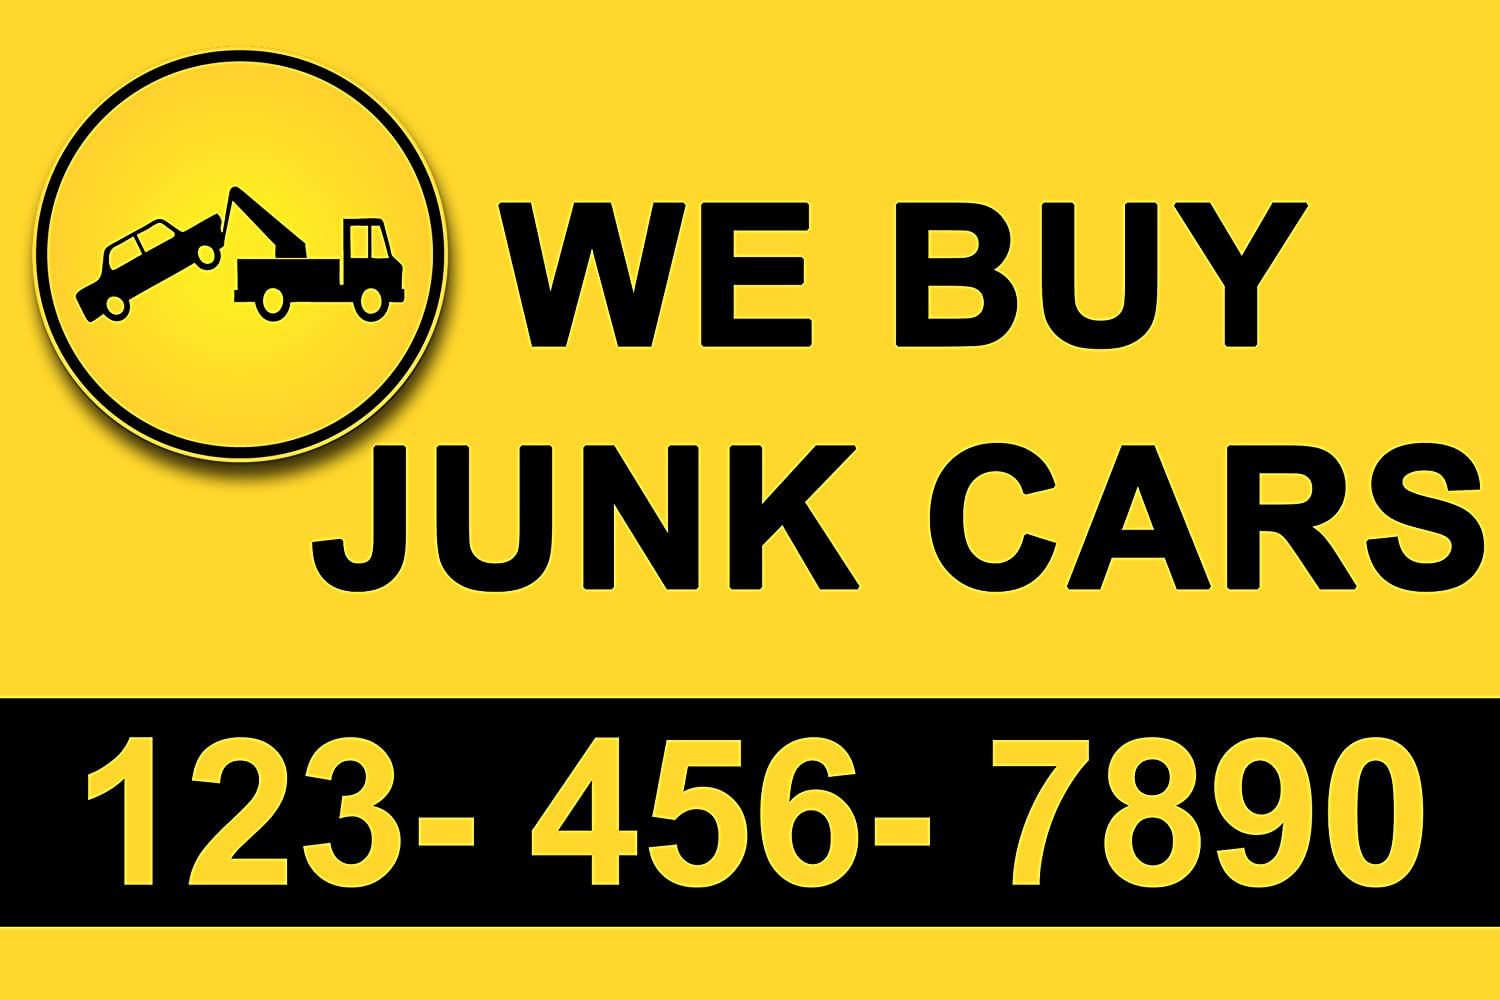 Amazon.com: We Buy Junk cars Banner sign 3 x 2 Ft by Bannerbuzz ...